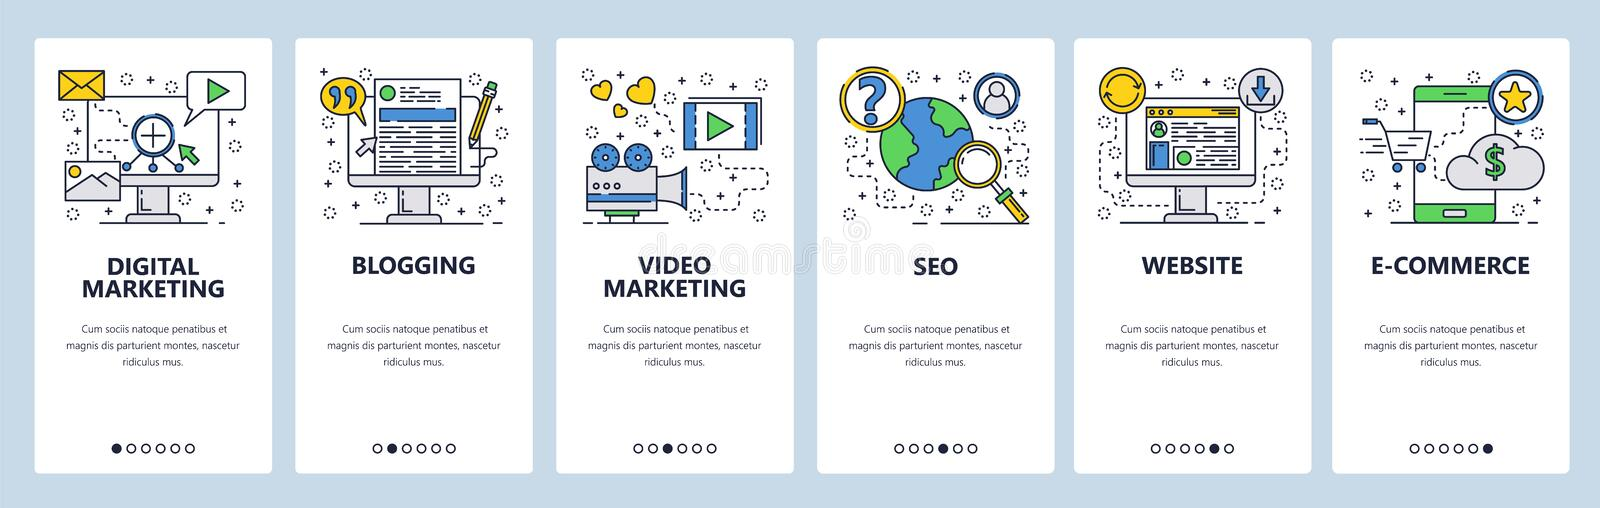 Onboarding Schirme der Website SEO, digitales Marketing, on-line-Einkaufen, Video Menüvektor-Fahnenschablone für Website und stock abbildung